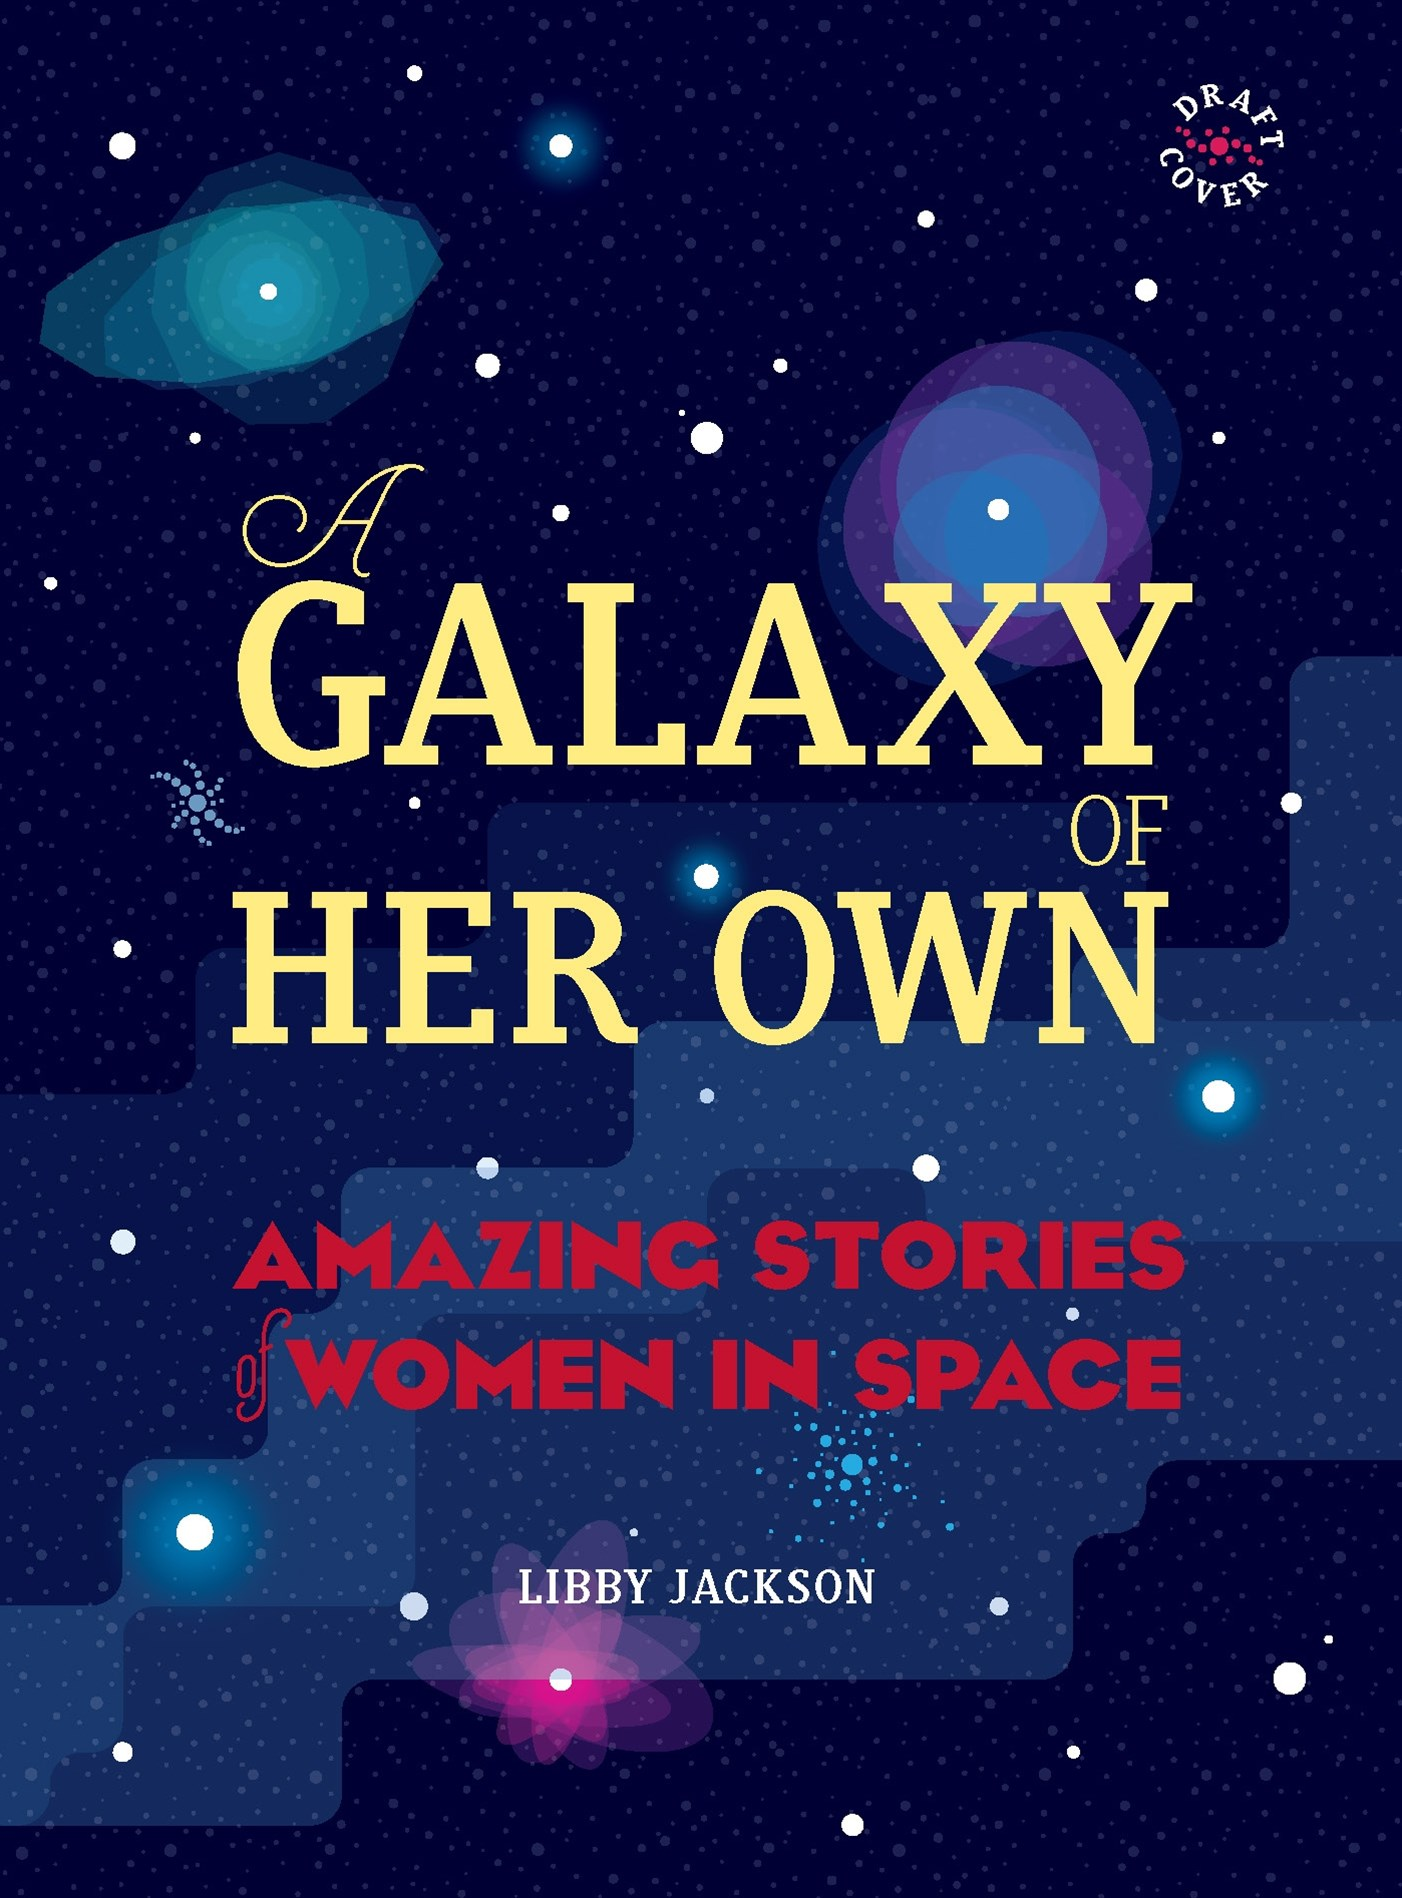 A Galaxy of Her Own: Amazing Stories of Women in Space